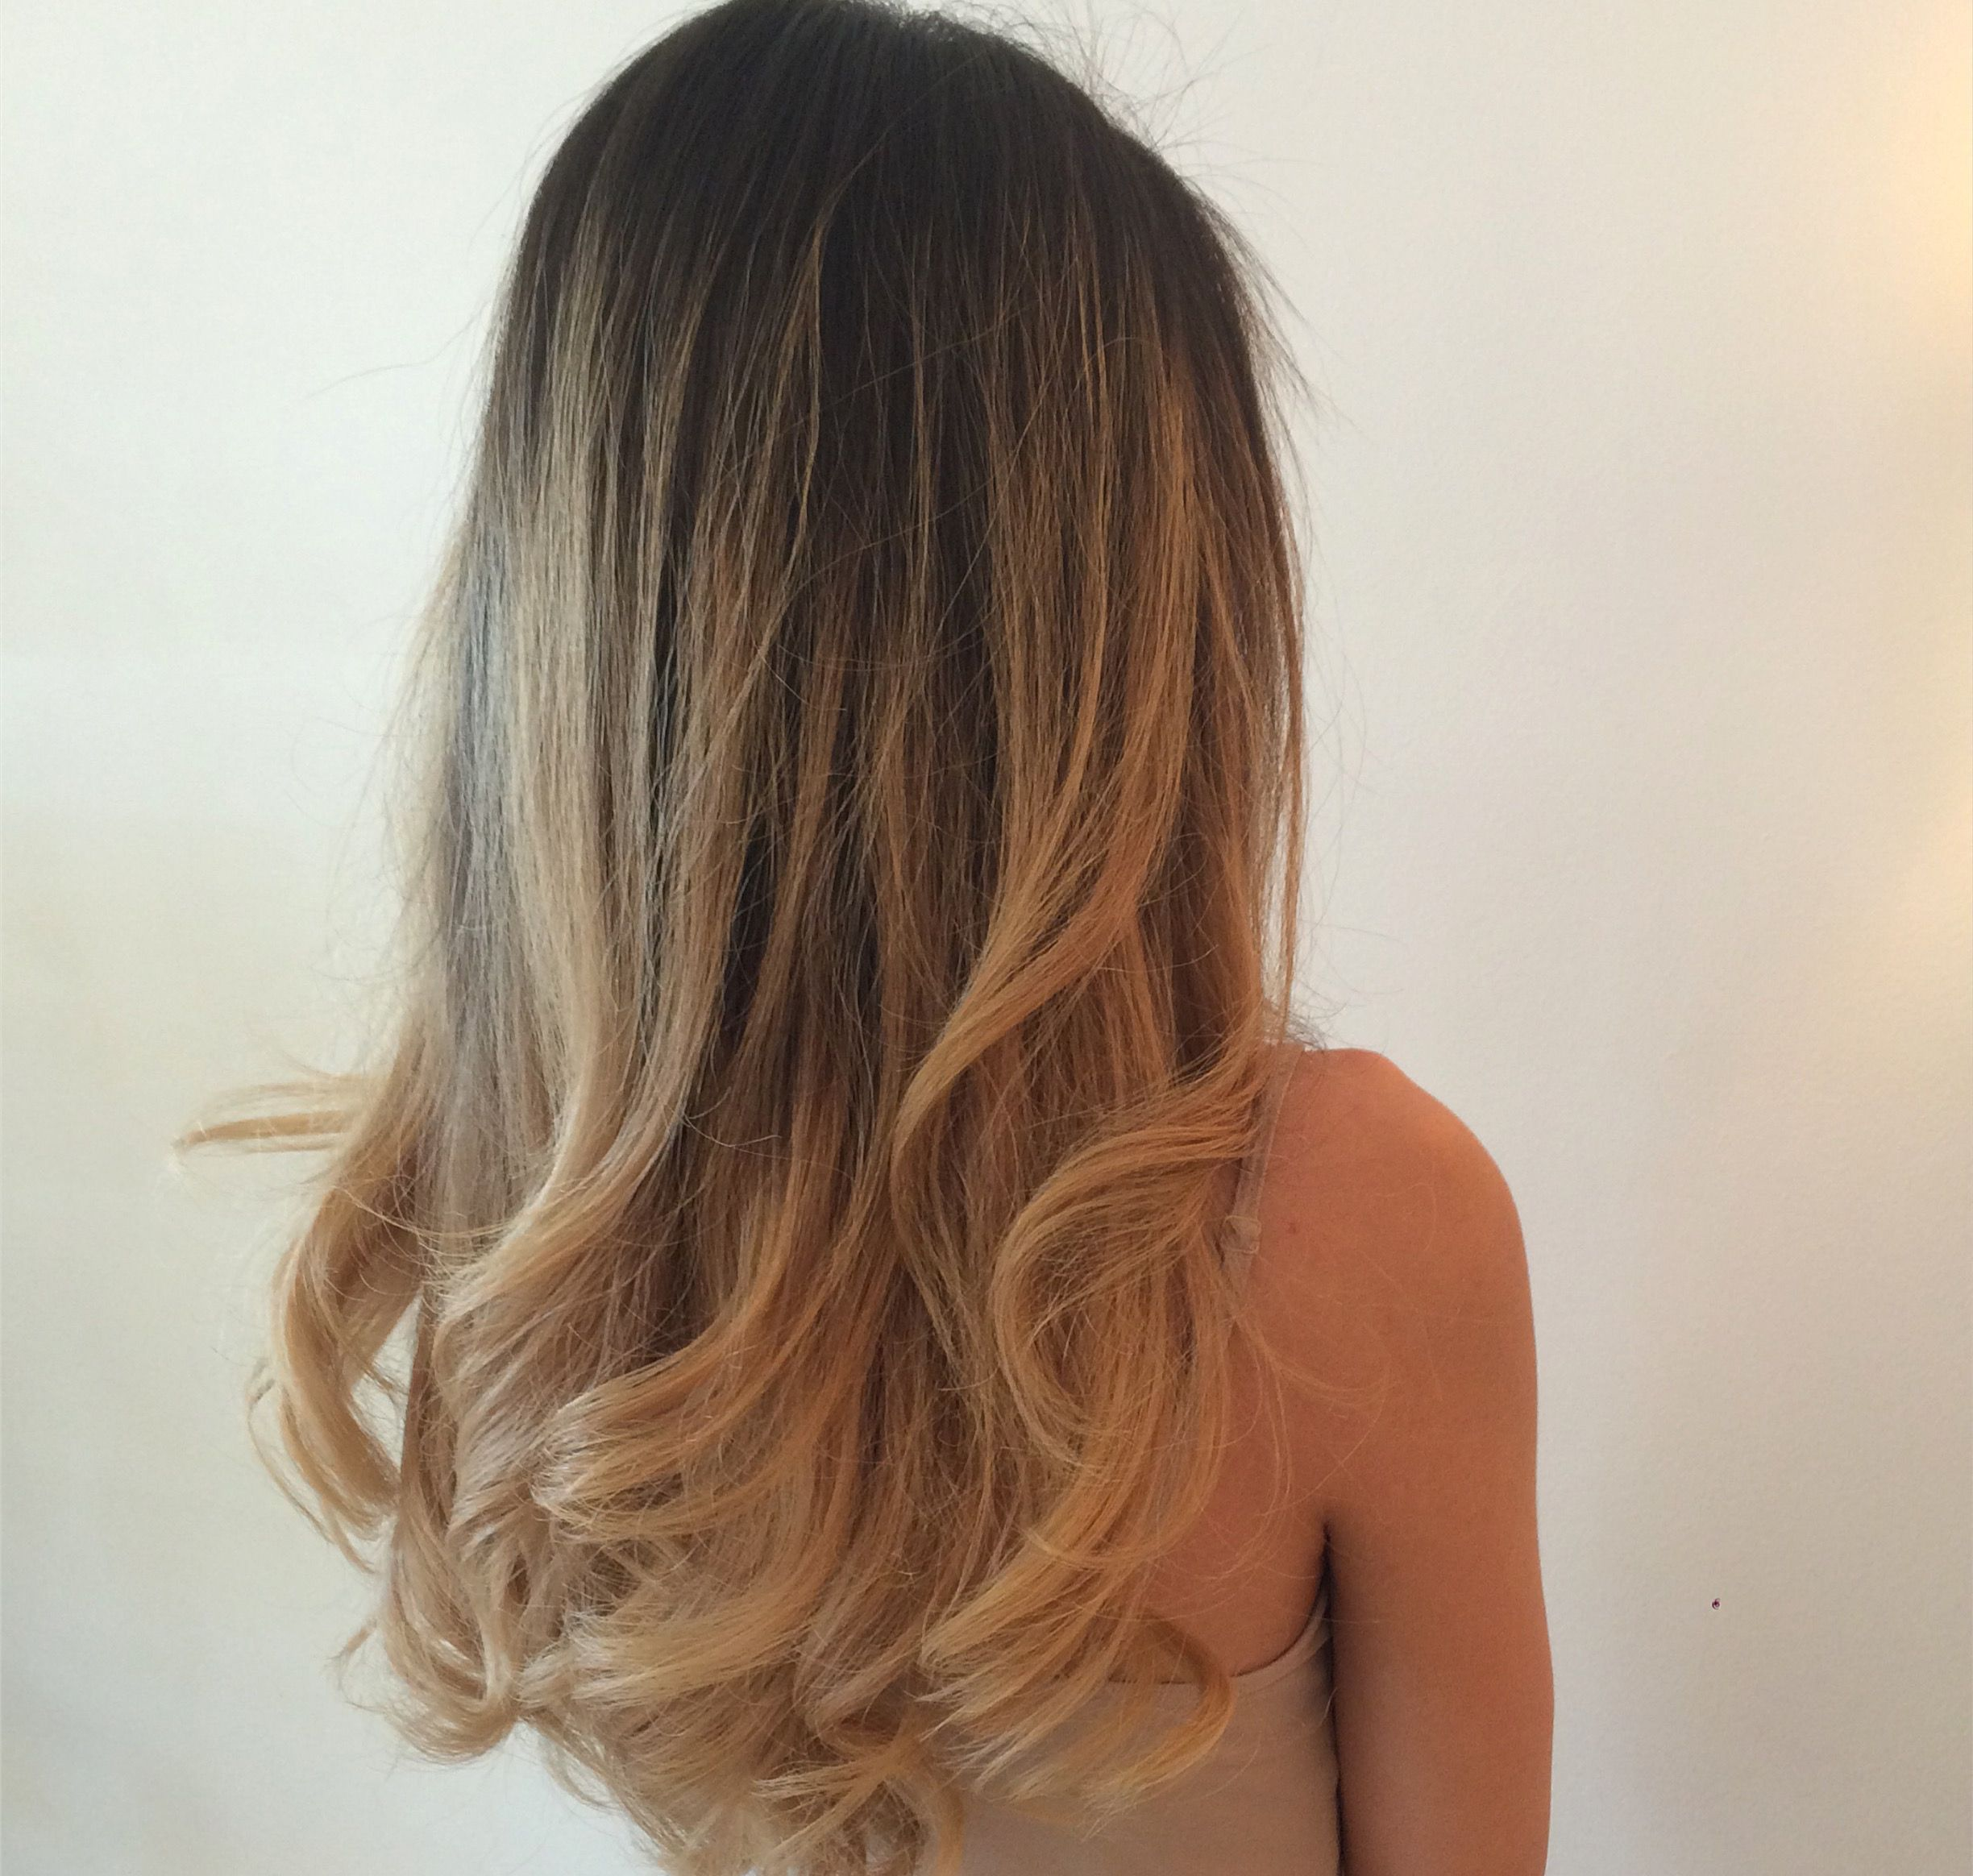 A perfect Flirtini = just a touch of fun curl By Denise at The